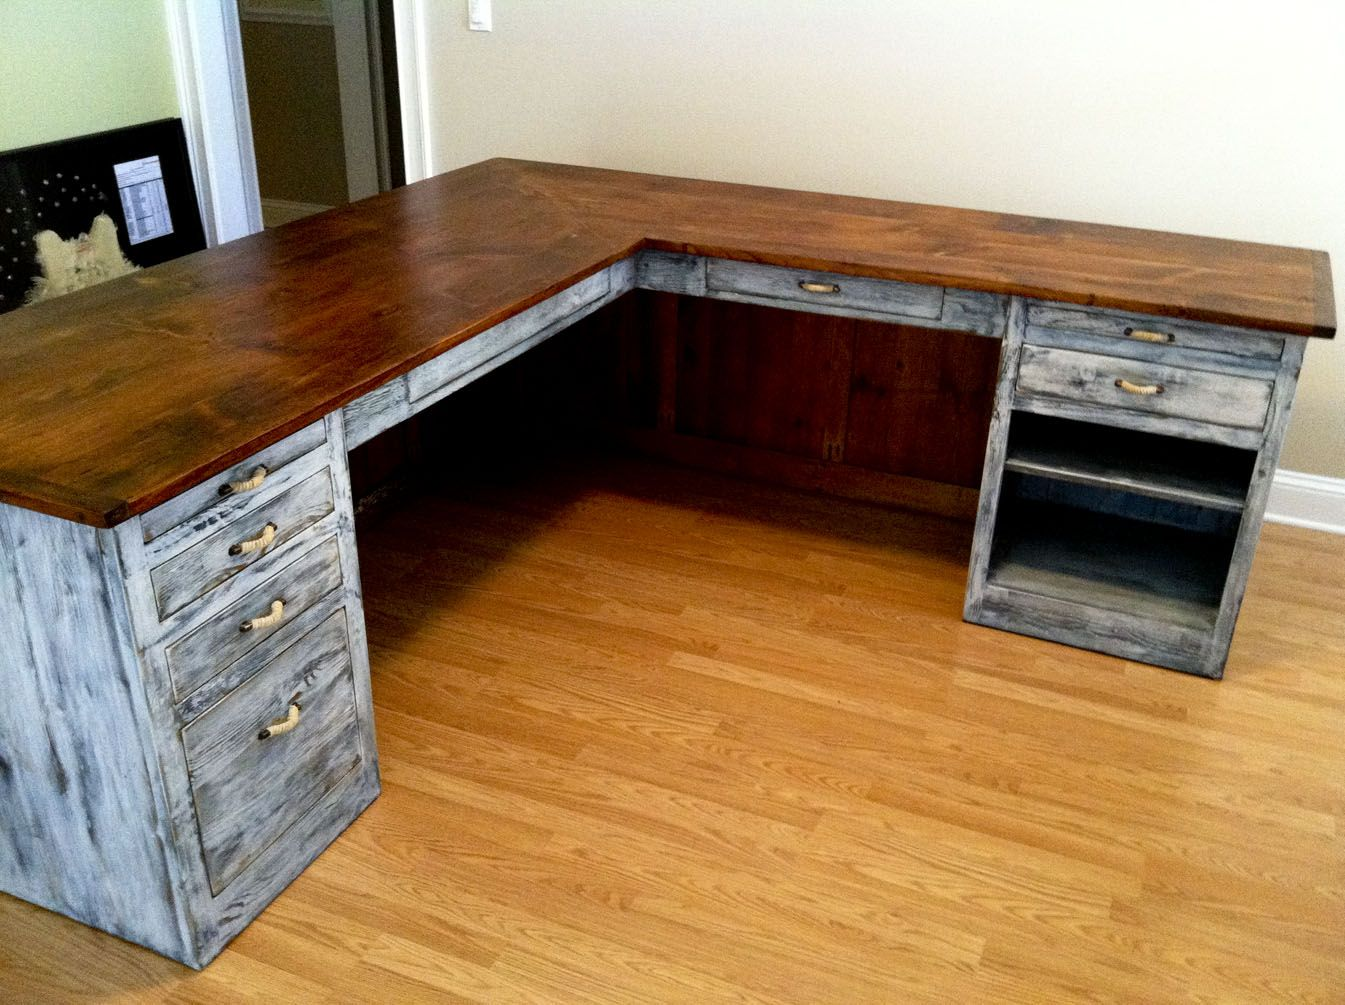 Pin By Kim Spector On Diy Furniture Diy Computer Desk Rustic Computer Desk Desk Plans